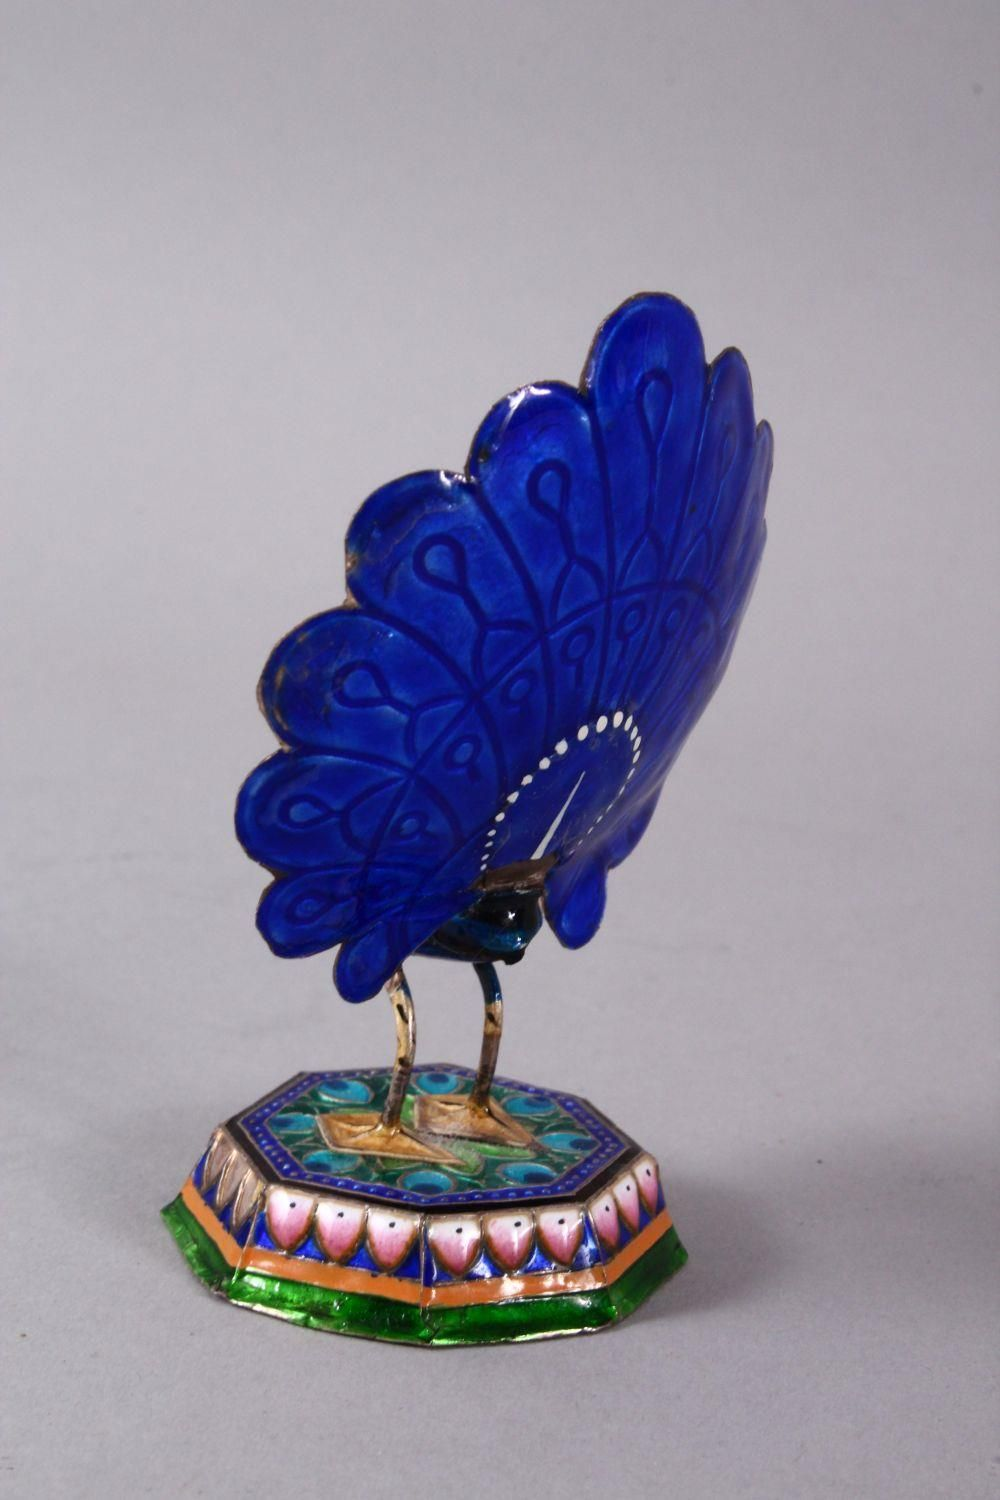 TWO 19TH / 20TH CENTURY INDIAN ENAMEL BIRD FIGURES, one of a peacock, the other of a bird upon - Image 4 of 8